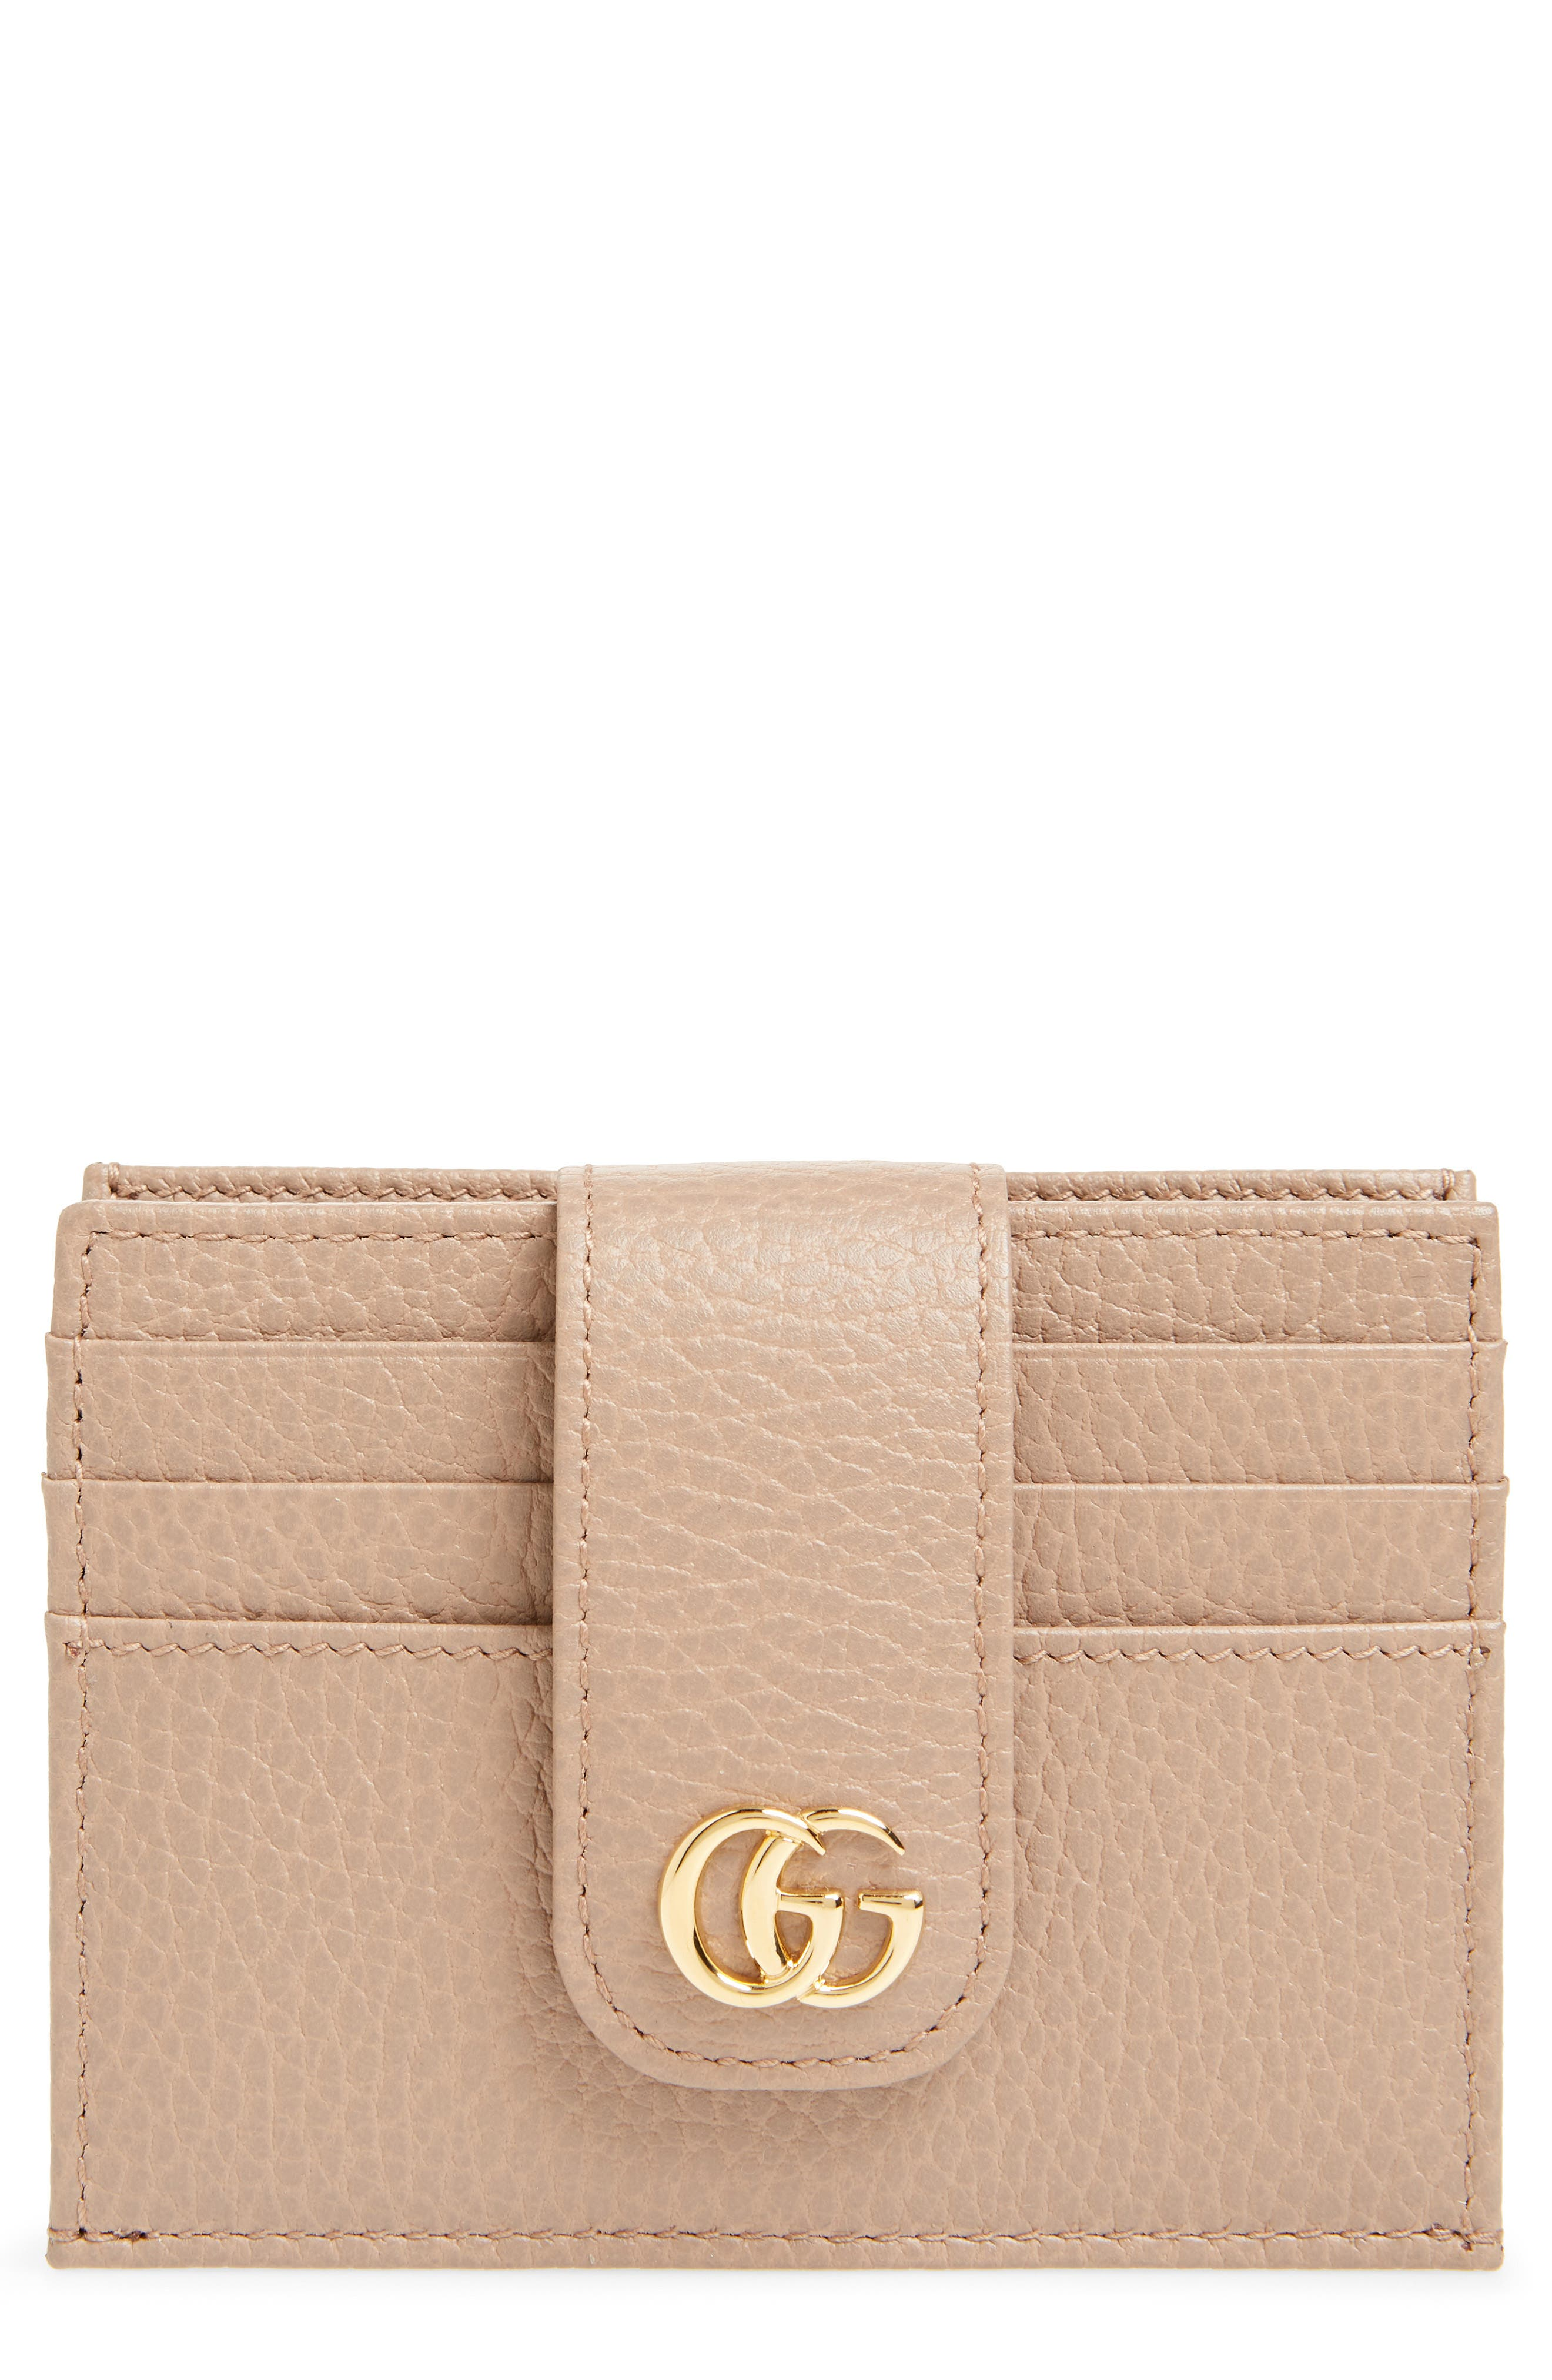 GG Marmont Leather Card Case,                         Main,                         color, PORCELAIN ROSE